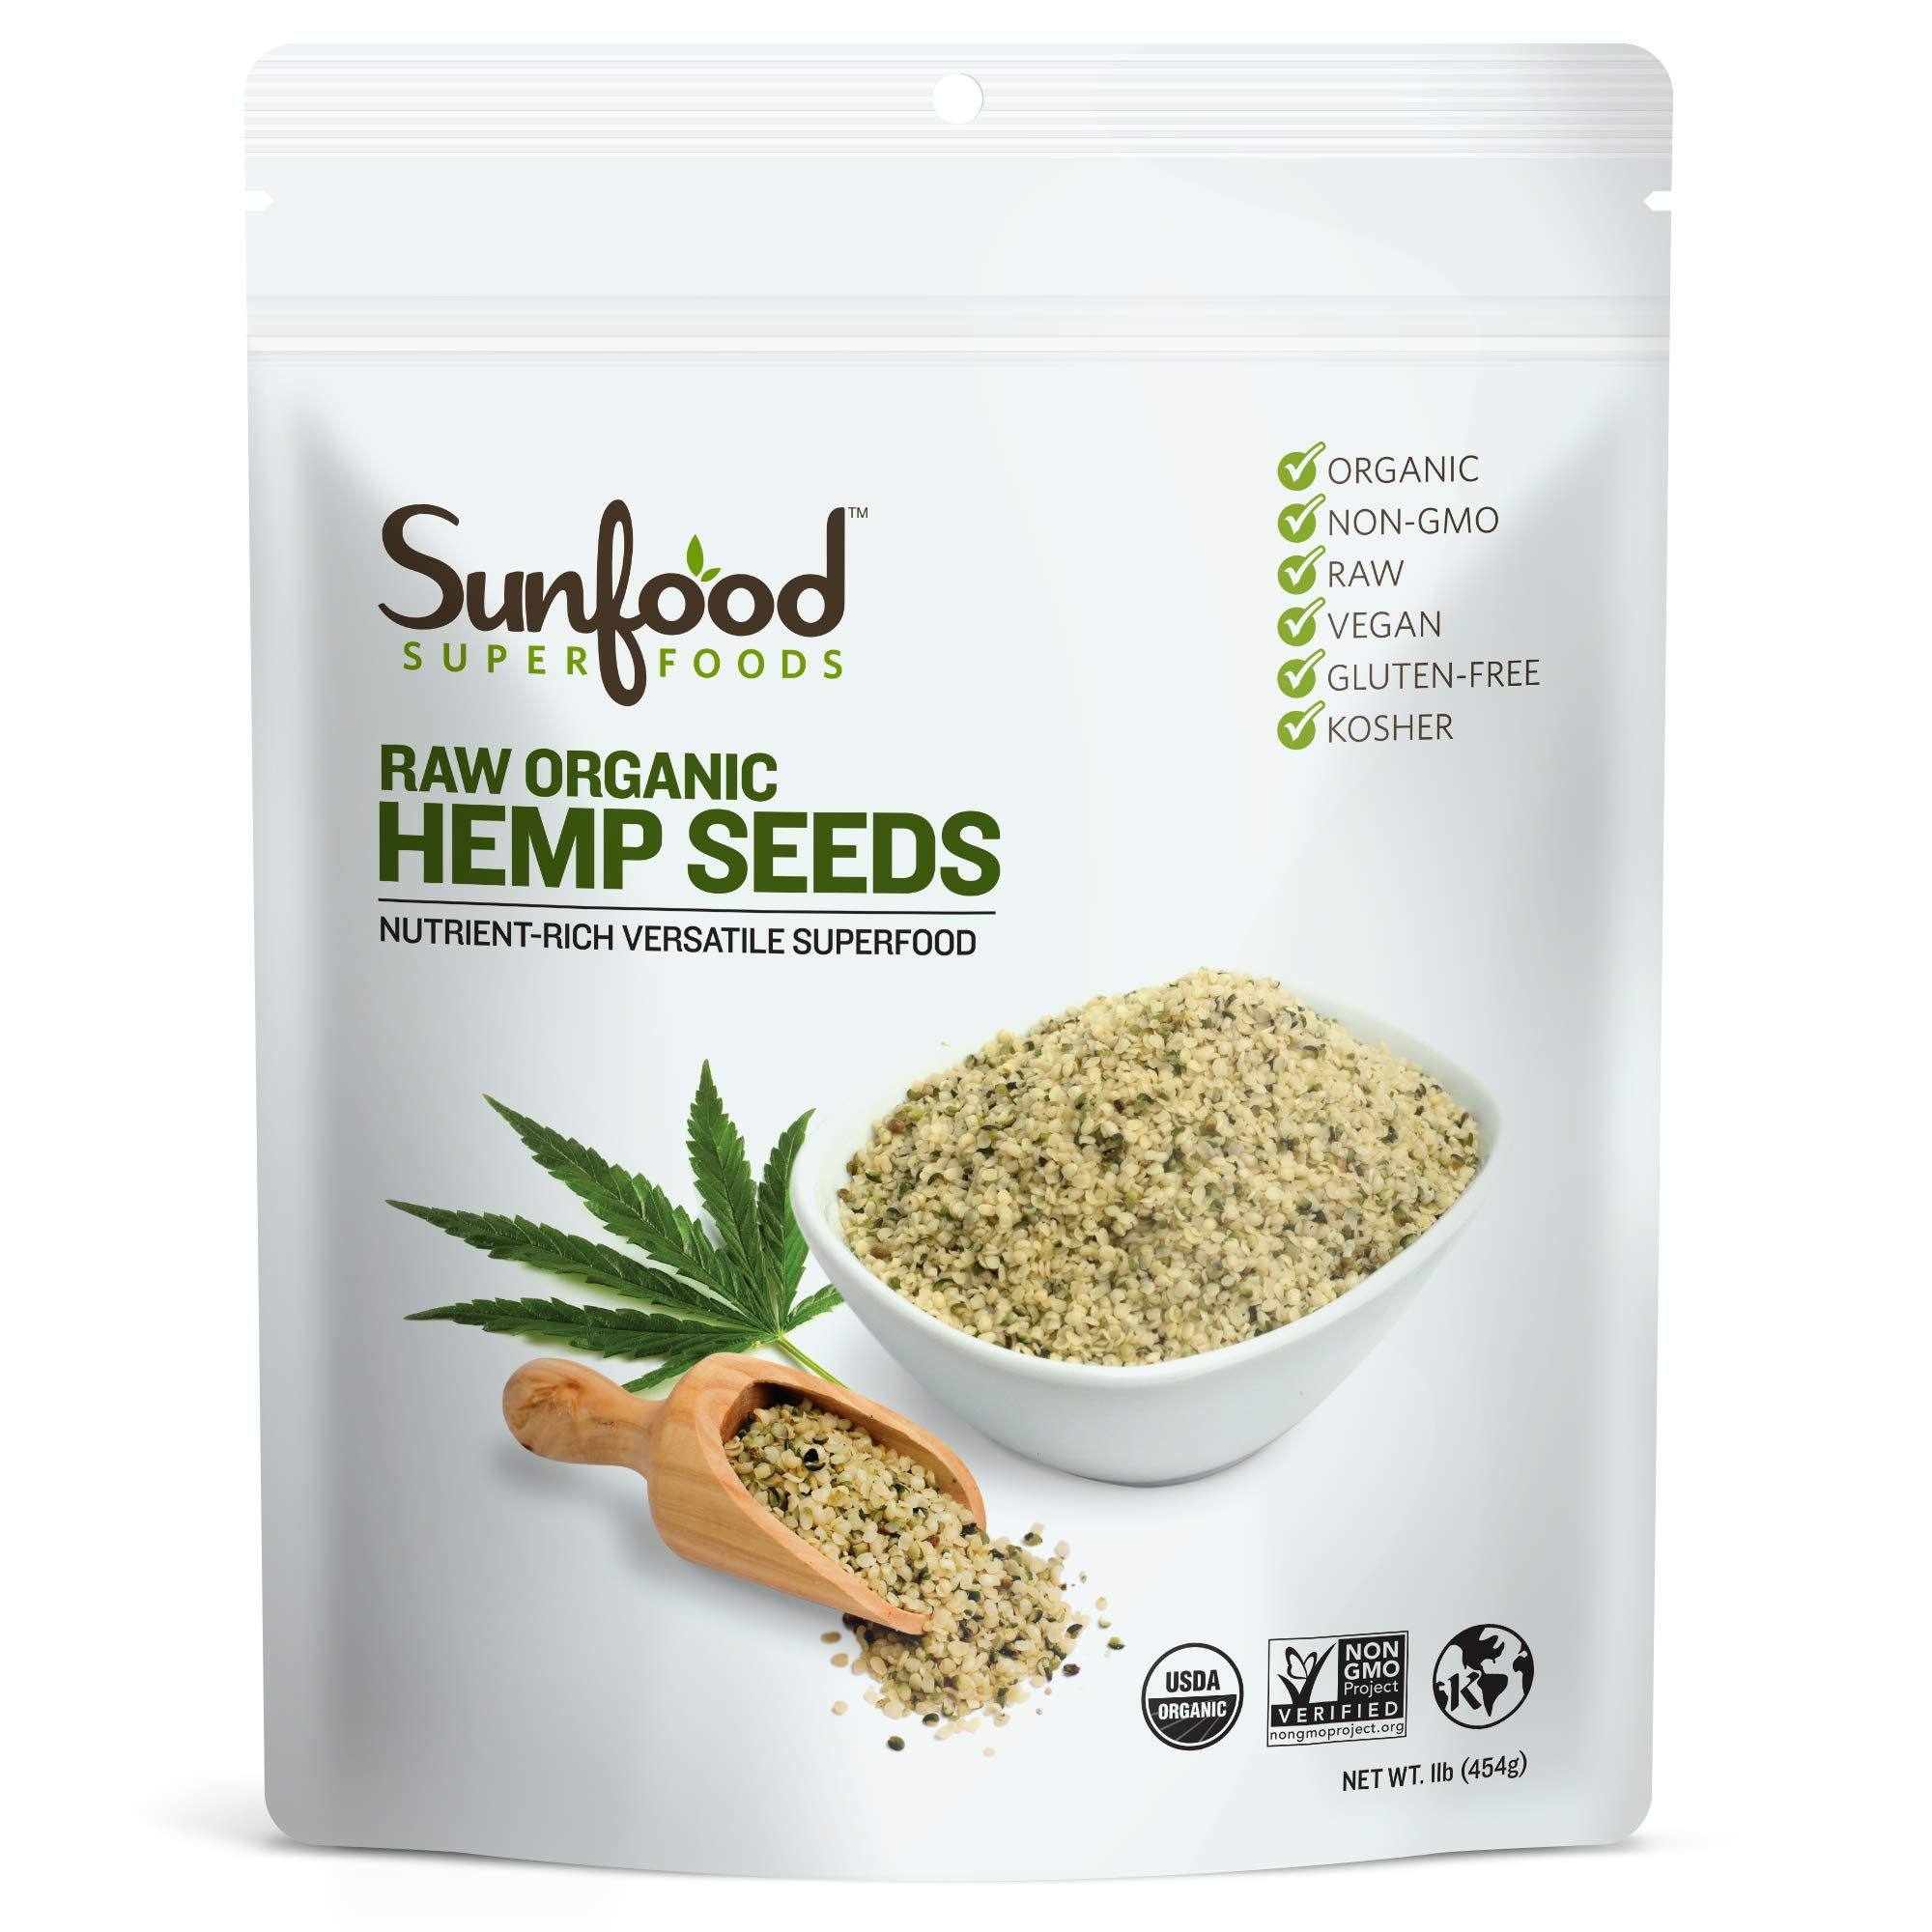 Sunfood Superfoods Shelled Hemp Seeds. Raw, Organic, Non-GMO. Bulk Value. Rich in Protein, Amino Acids, Healthy Plant Fats. 100% All Natural Single Ingredient Product. 1 lb Bag.